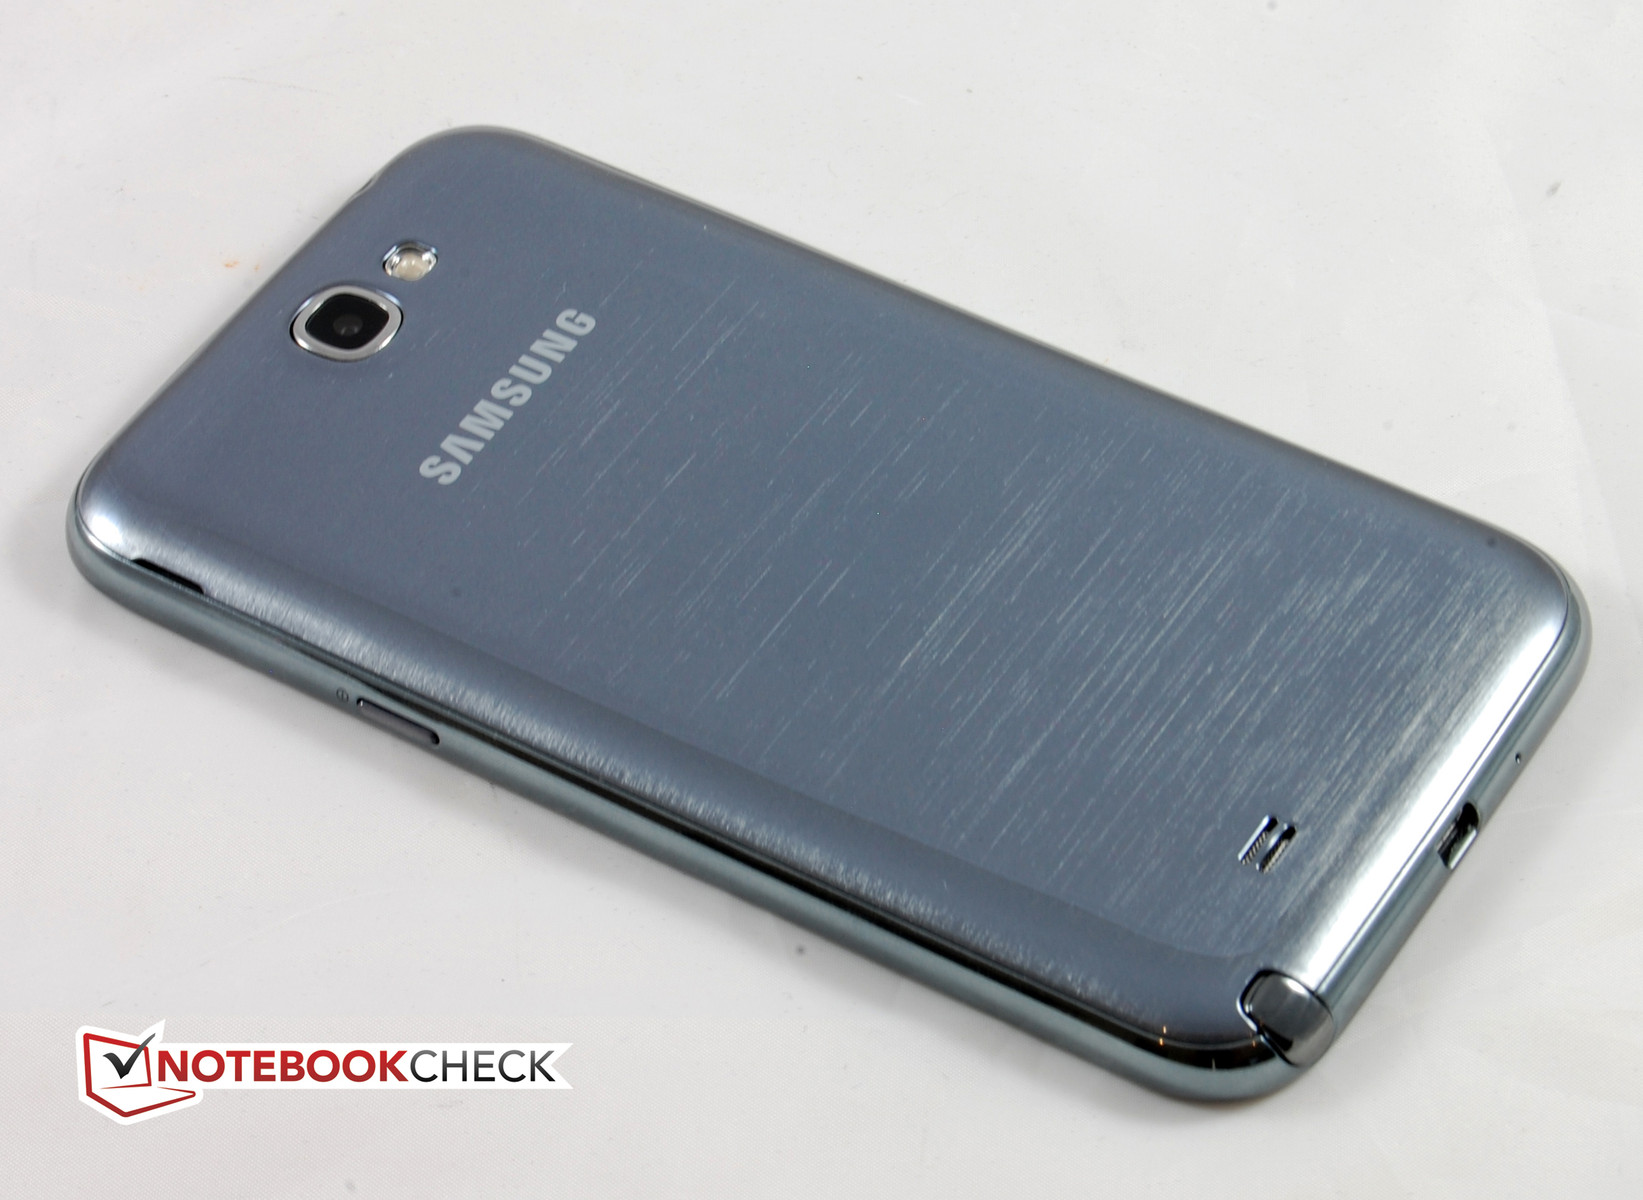 Galaxy note 2 7100 firmware